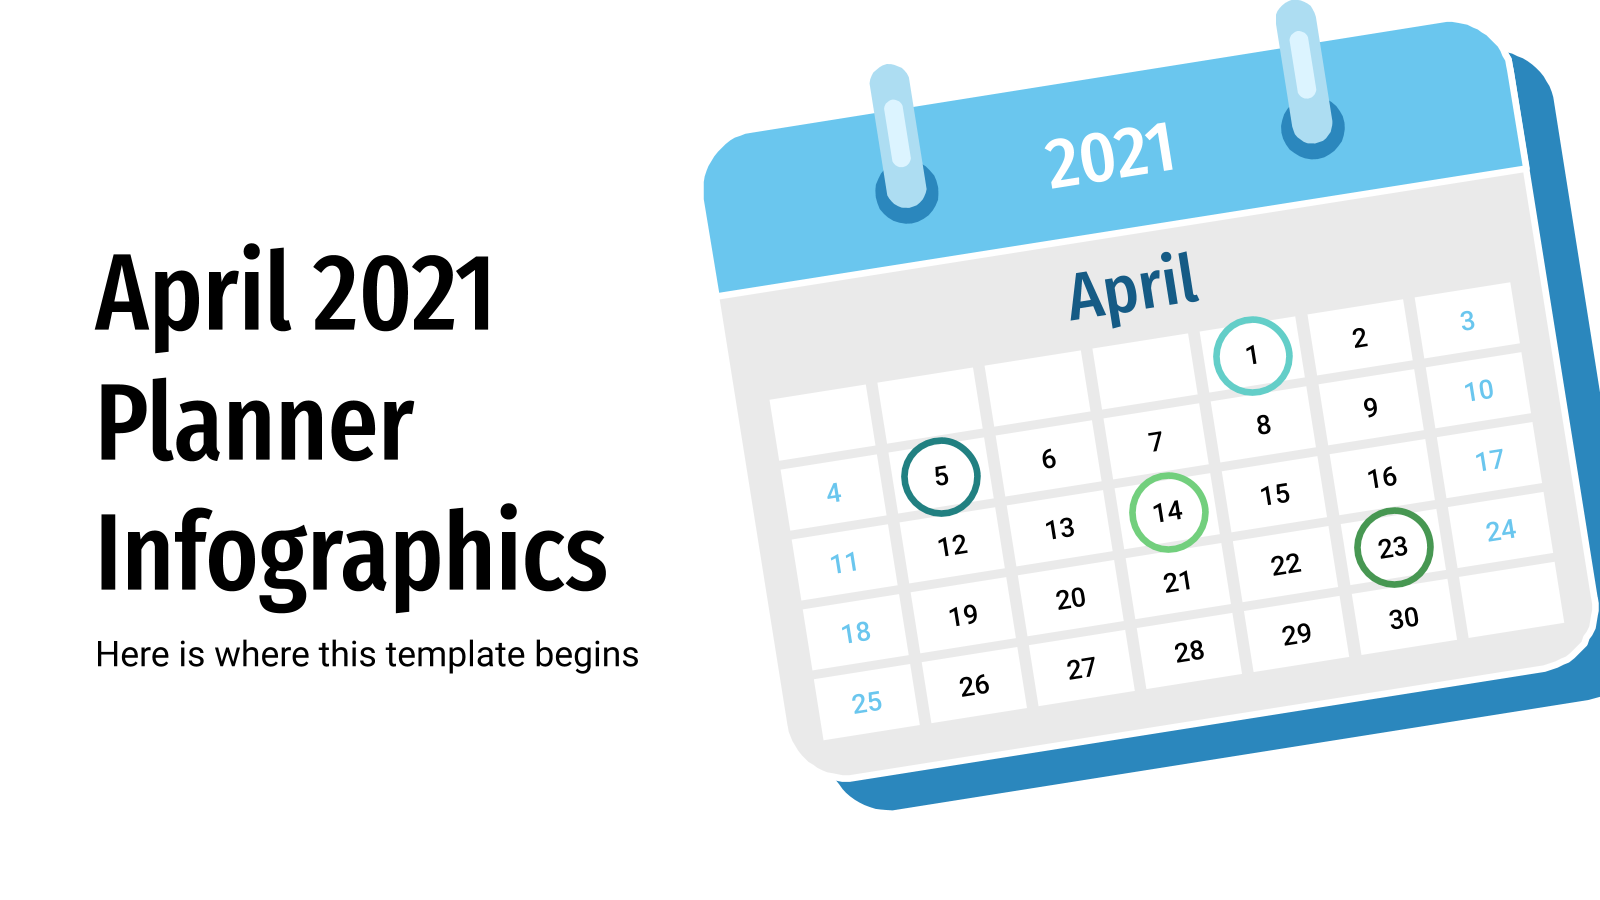 April 2021 Planner Infographics presentation template